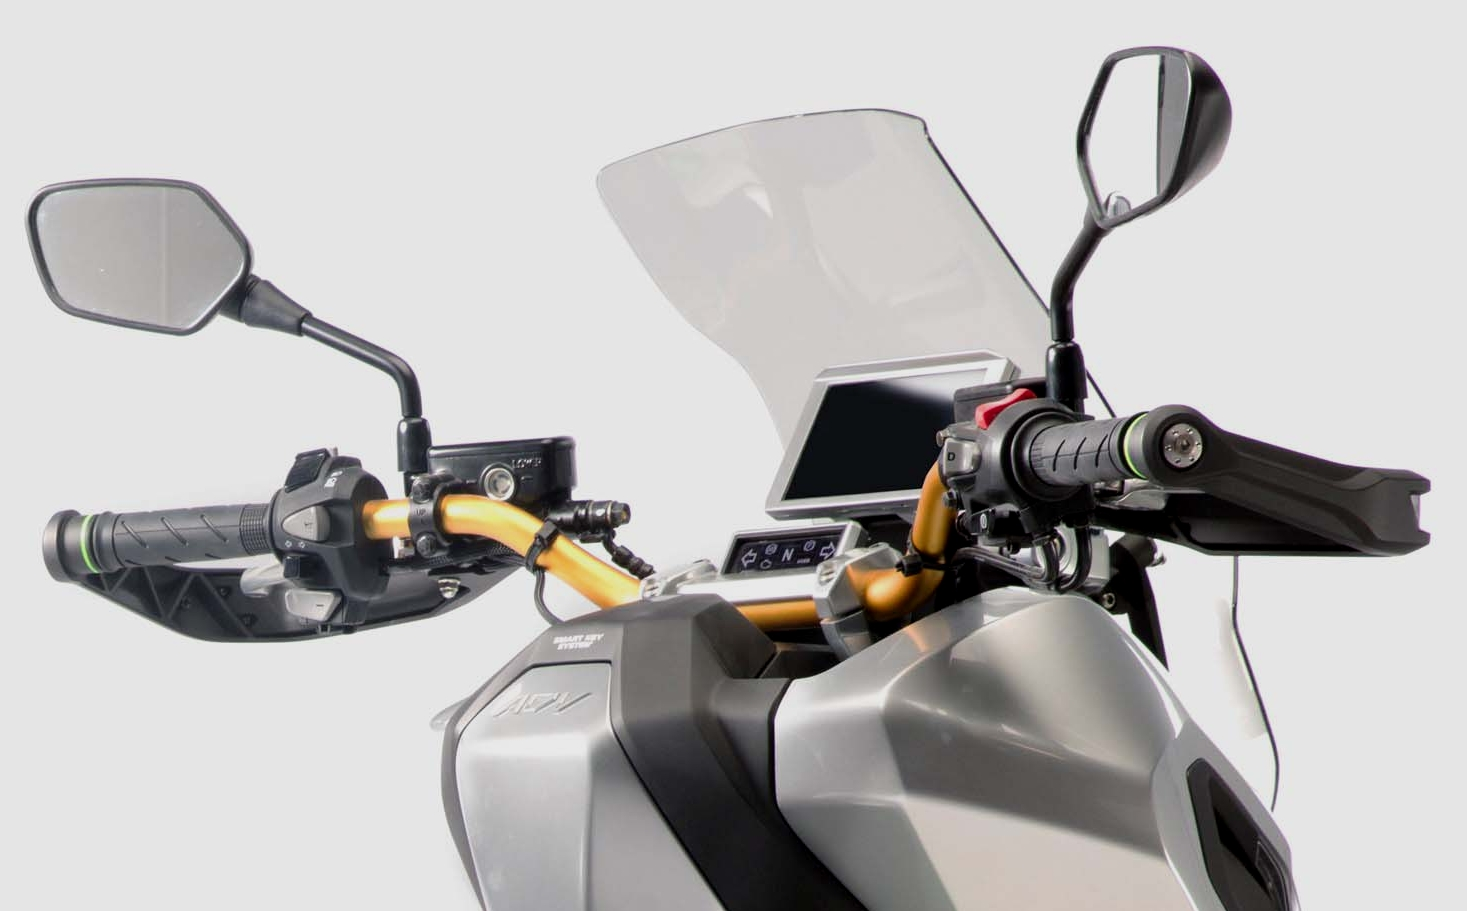 2018 honda x adv. exellent 2018 official  2017 honda xadv dct automatic motorcycle  scooter announced  hondapro kevin with 2018 honda x adv 2